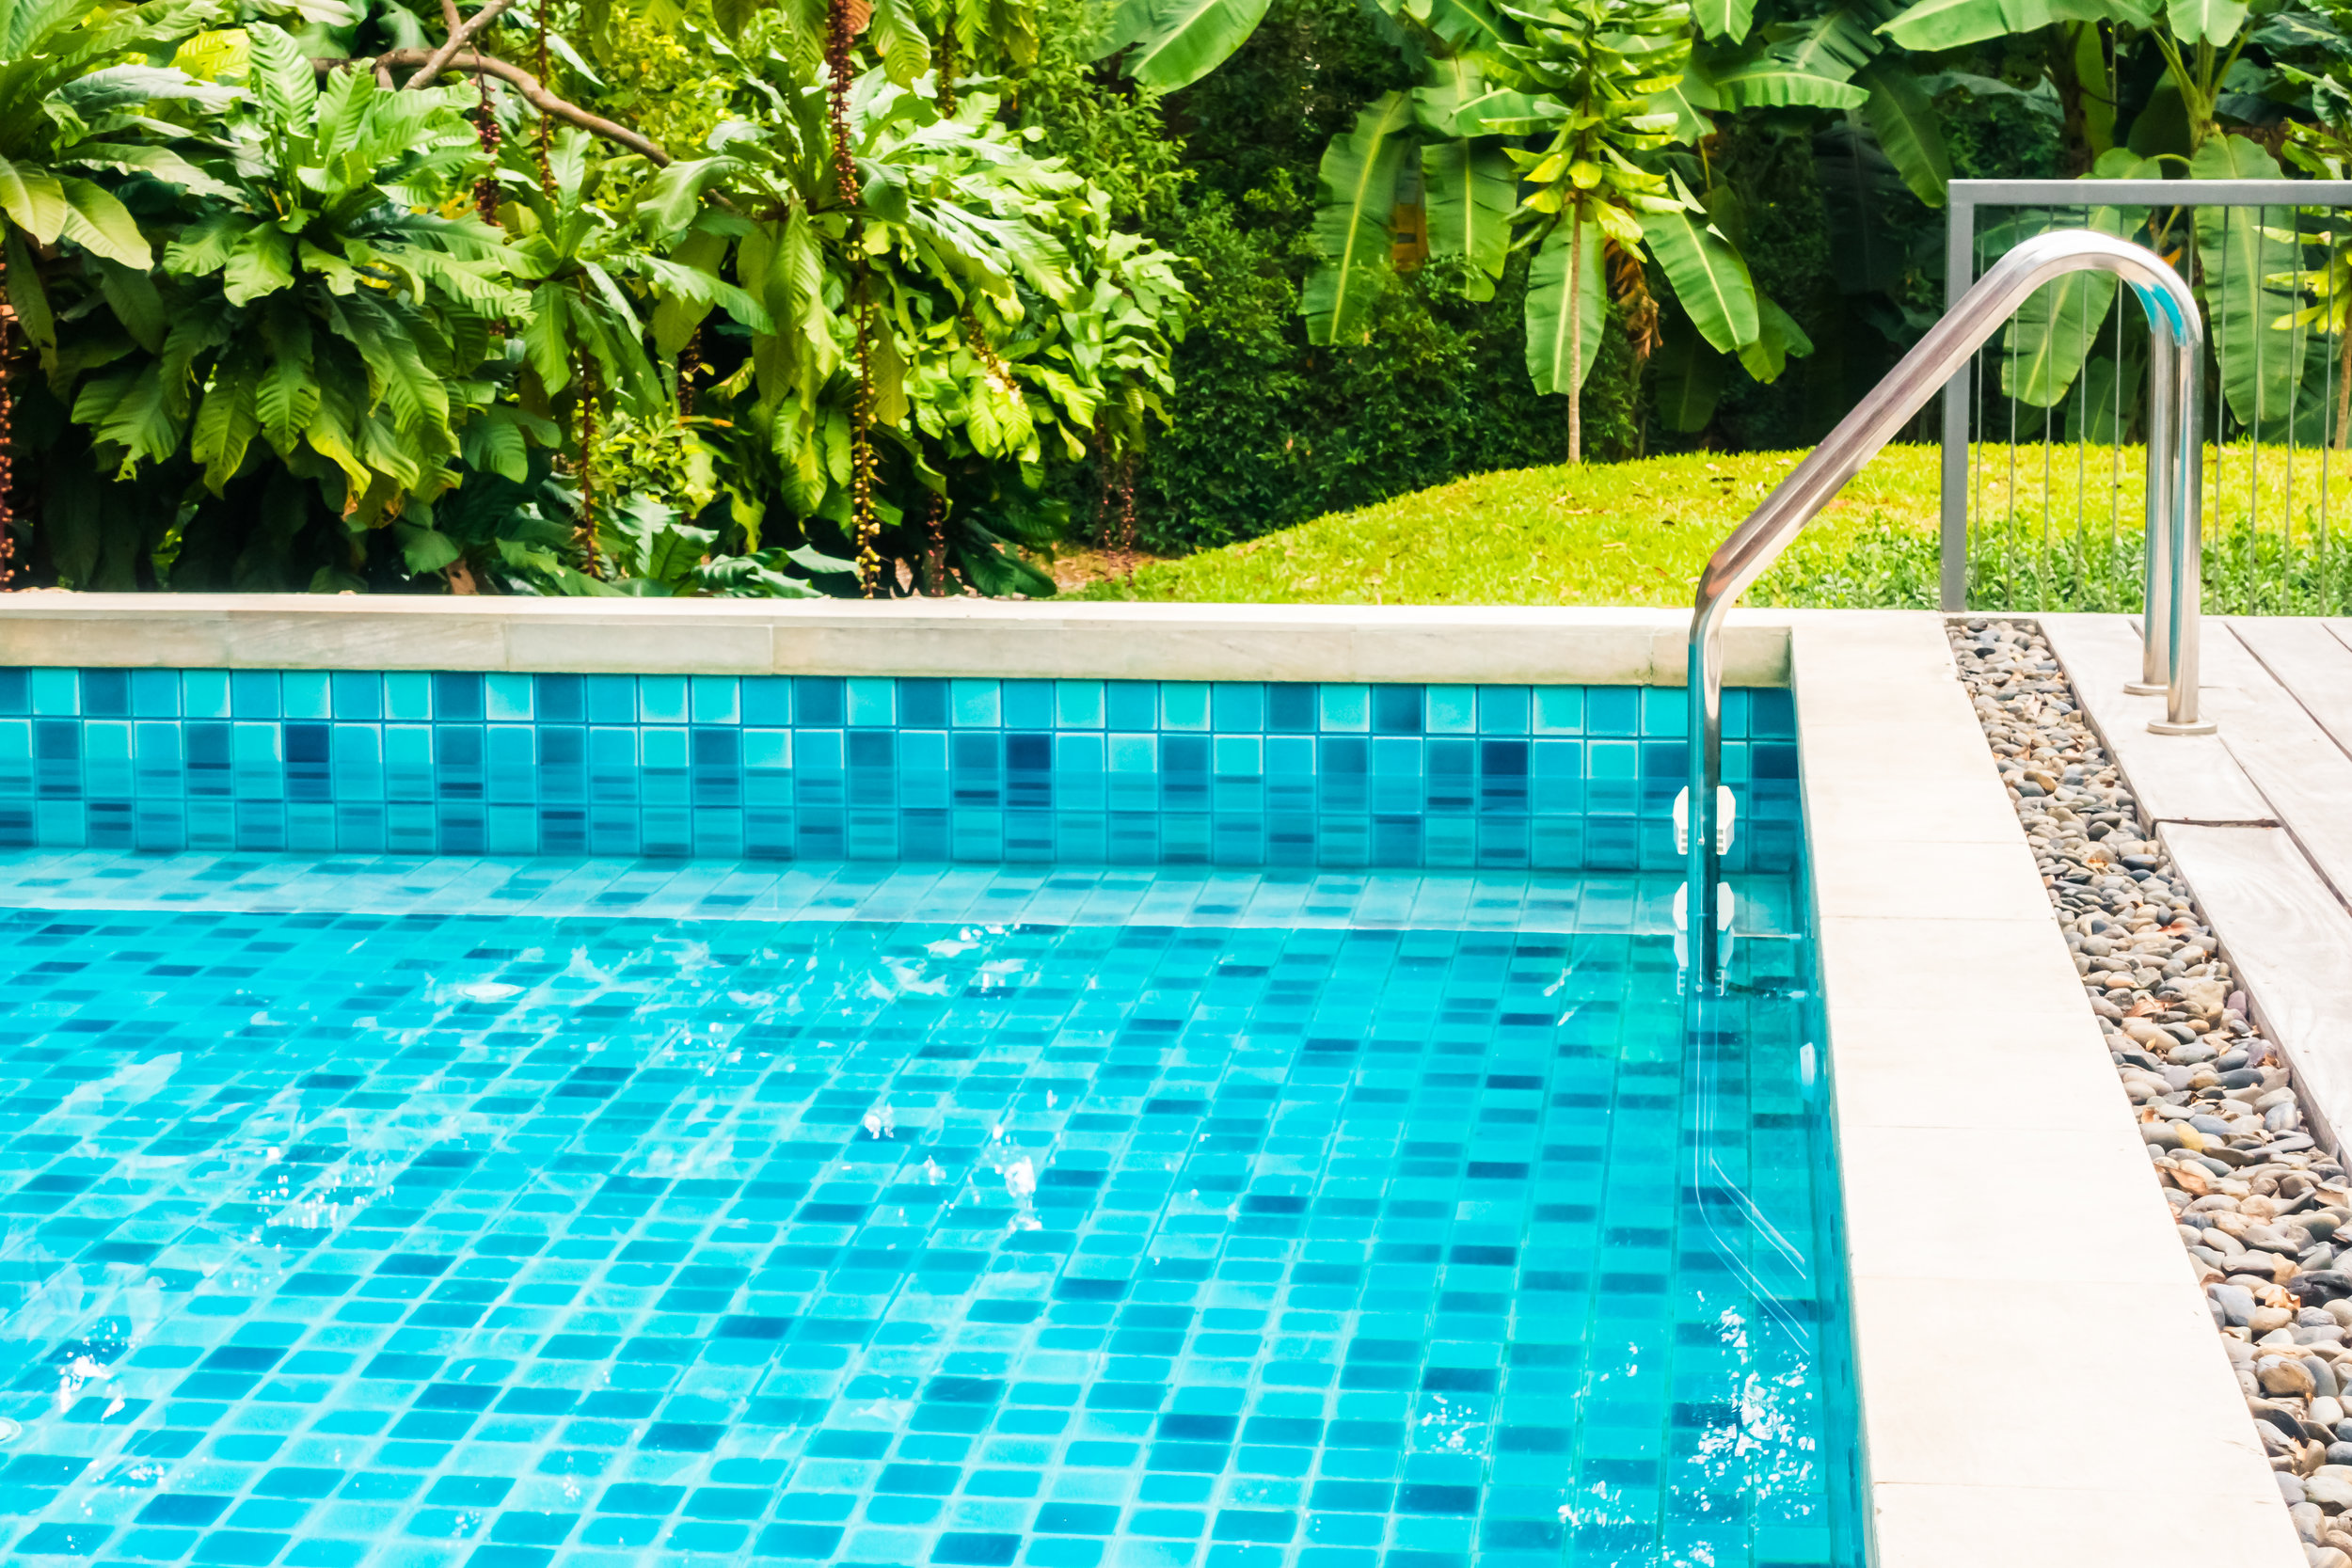 A pool liner with the sparkle of blue glass tiles.